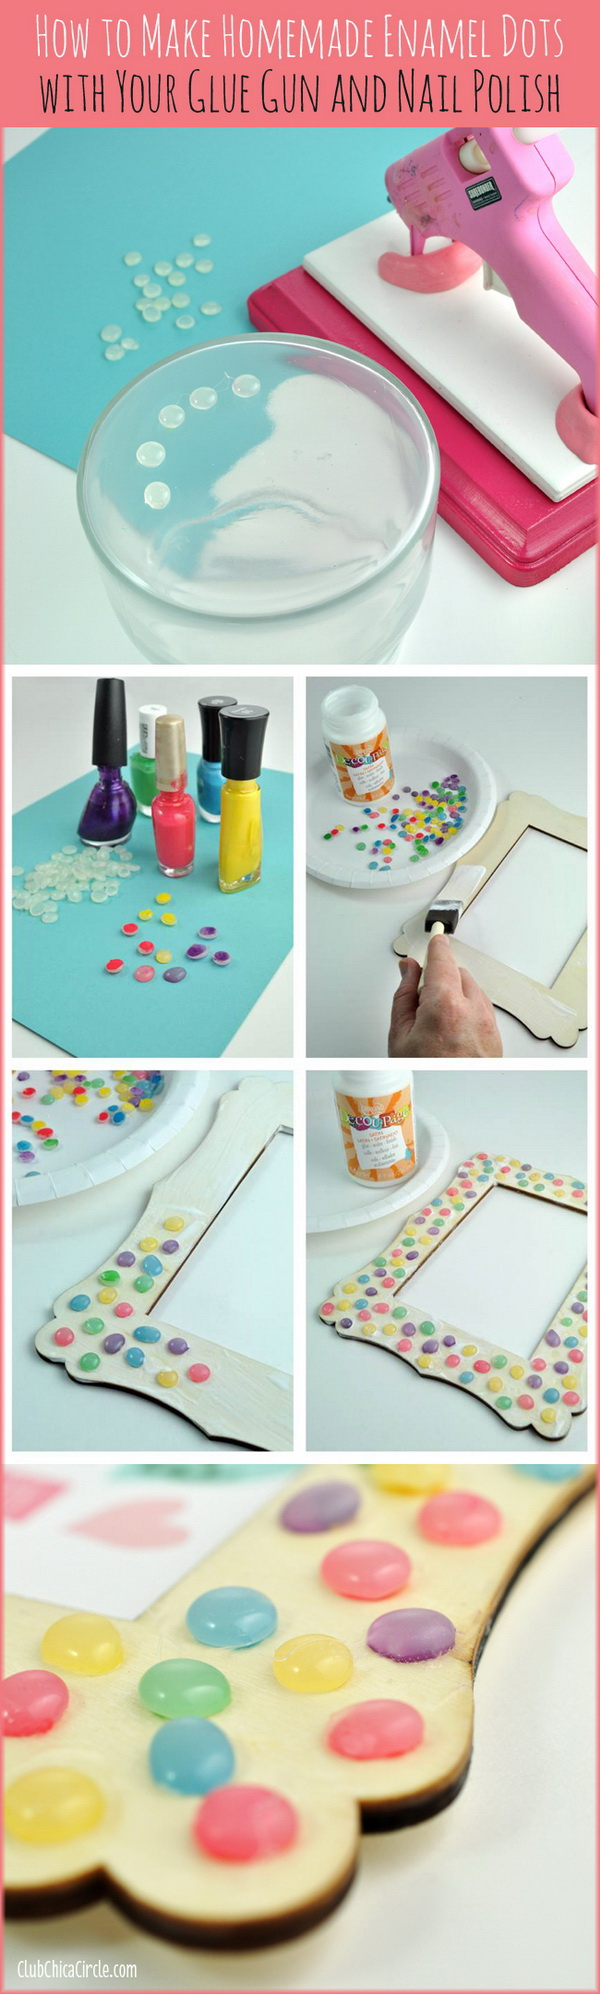 Homemade Faux Enamel Dots. A fun weekend project made with nail polish anf hot glue!  So clever and cool! You can make these faux enamel dots to decorate everything you want!